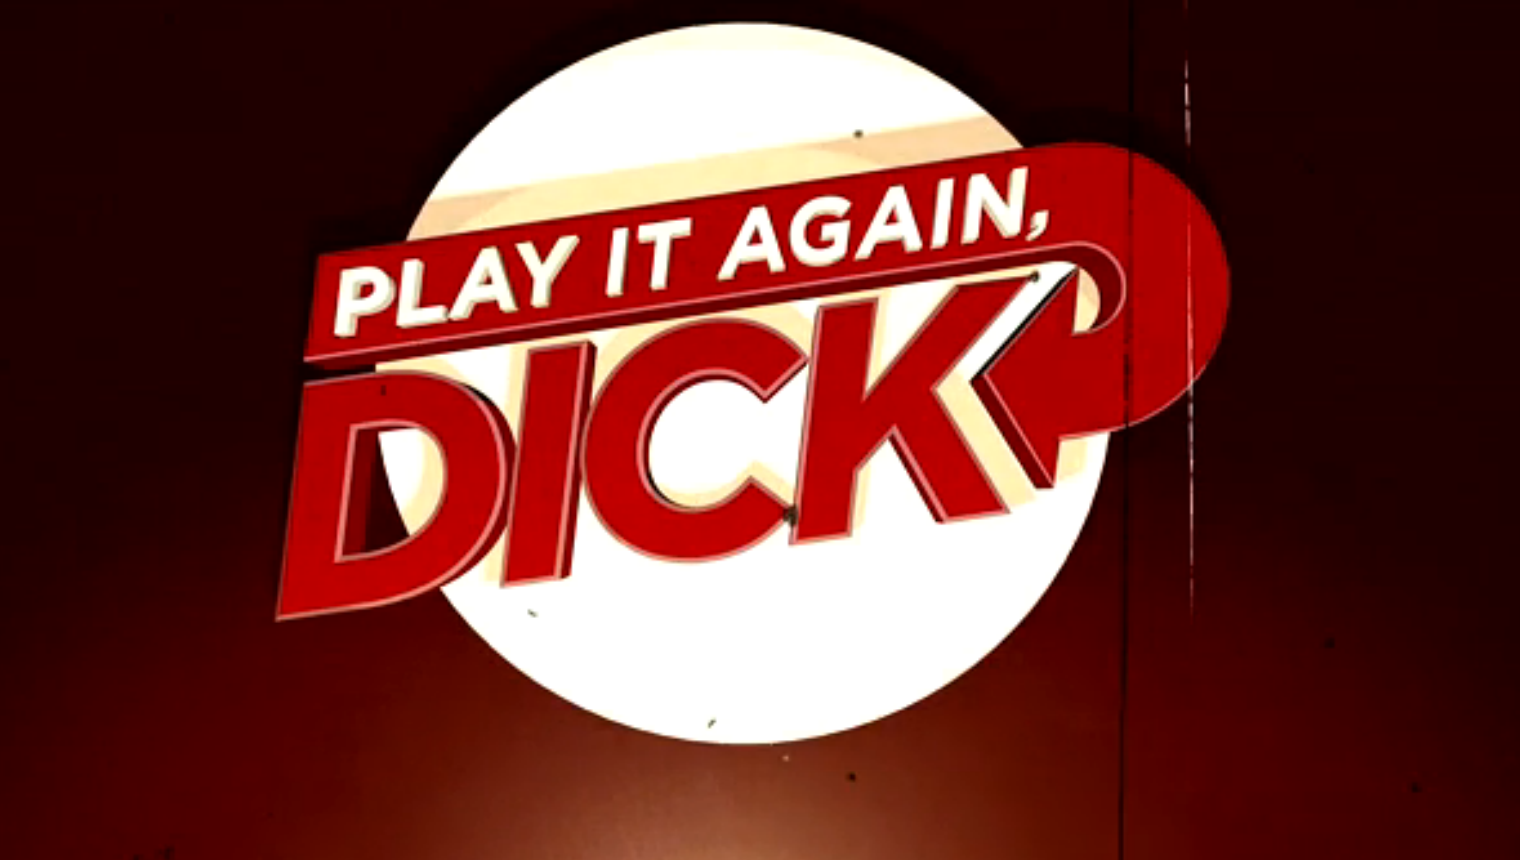 Play-It-Again-Dick-Logo